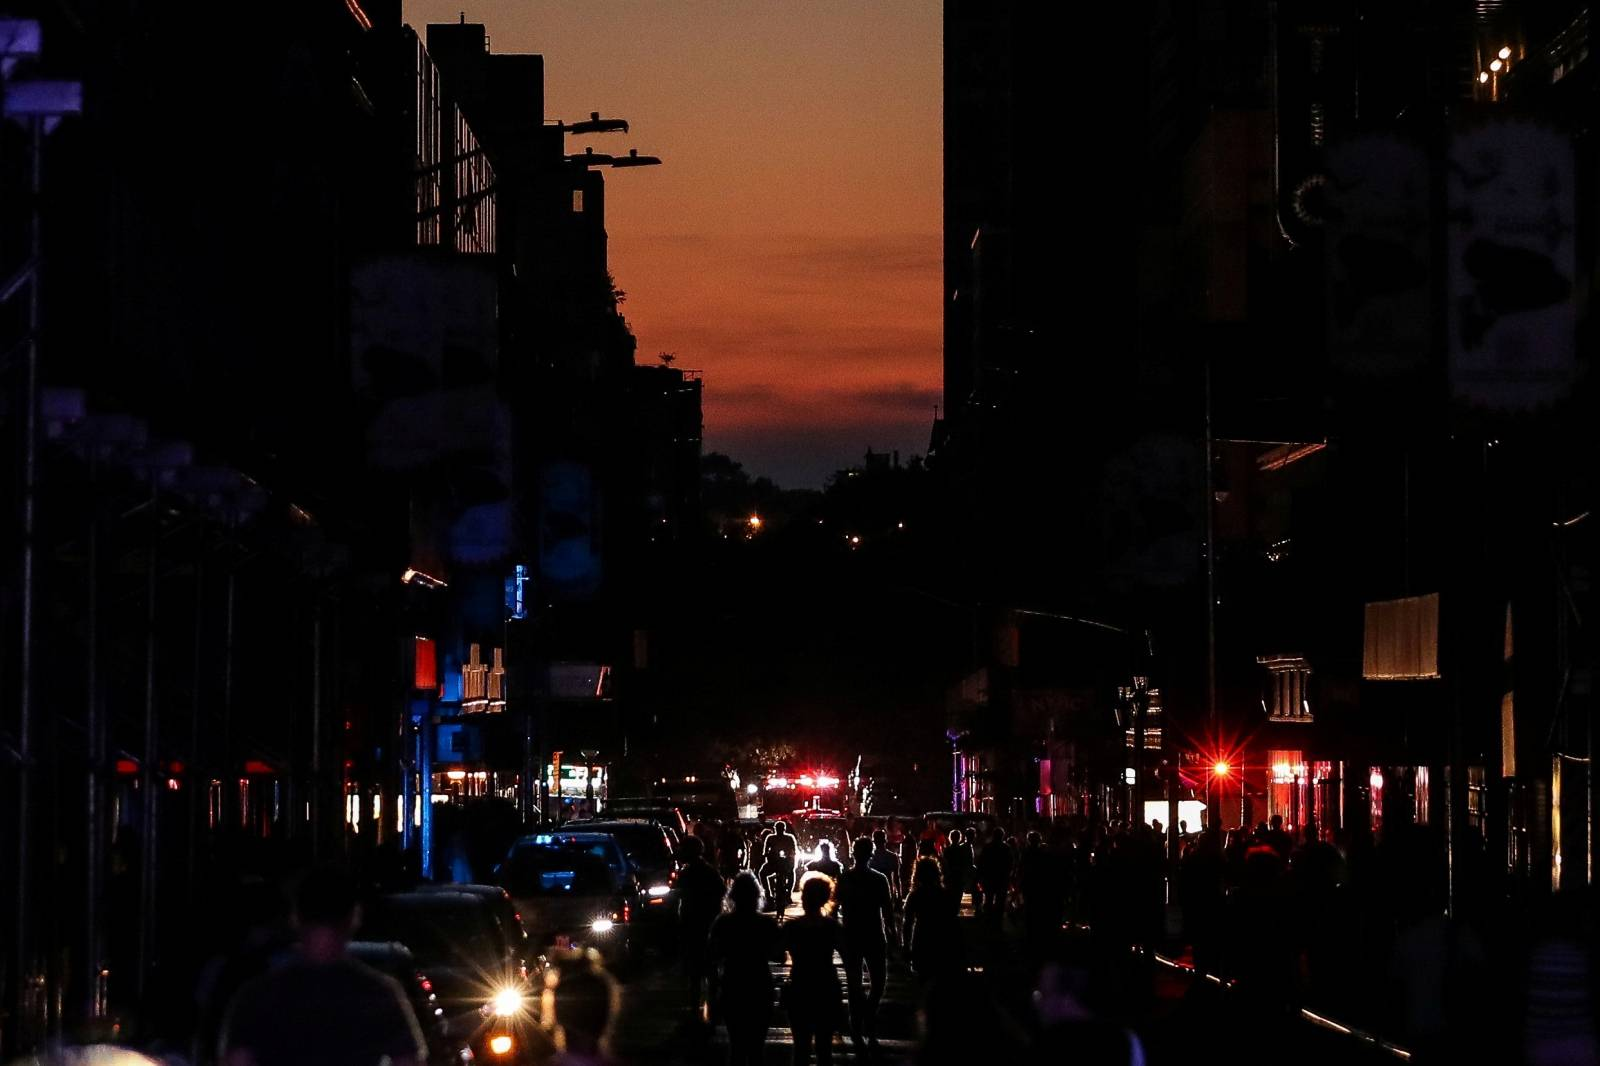 People walk along a dark street near Times Square area, as a blackout affects buildings and traffic during widespread power outages in the Manhattan borough of New York